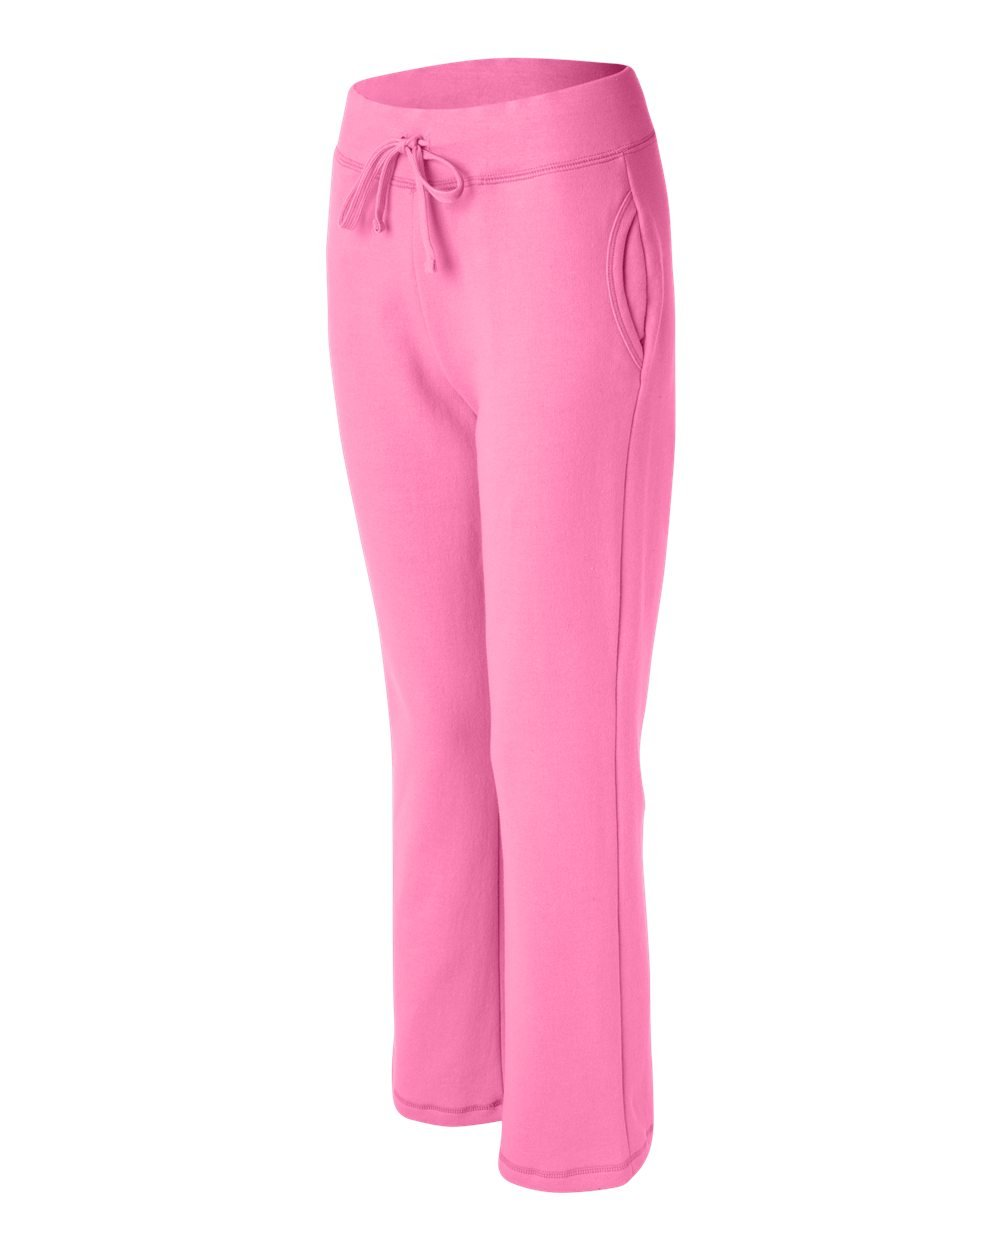 Joe's USA Ladies Soft and Cozy Yoga Style Open Bottom Sweatpants in 8 Colors Sizes S-2XL